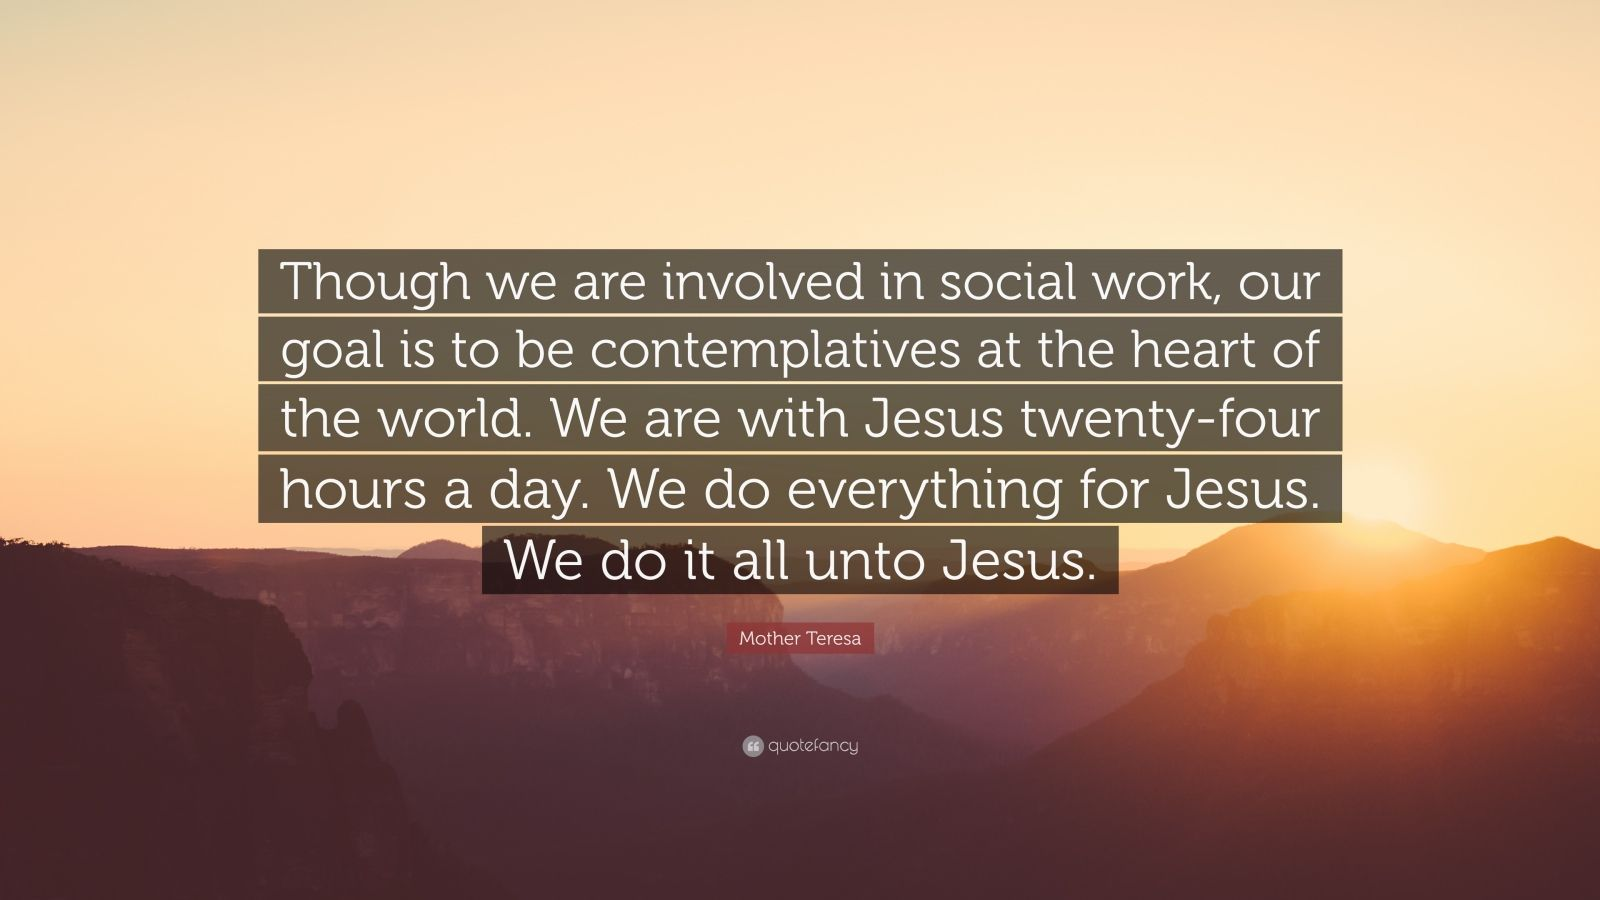 """Mother Teresa Quote: """"Though we are involved in social work, our goal is to be contemplatives at the heart of the world. We are with Jesus twenty-four hours a day. We do everything for Jesus. We do it all unto Jesus."""""""